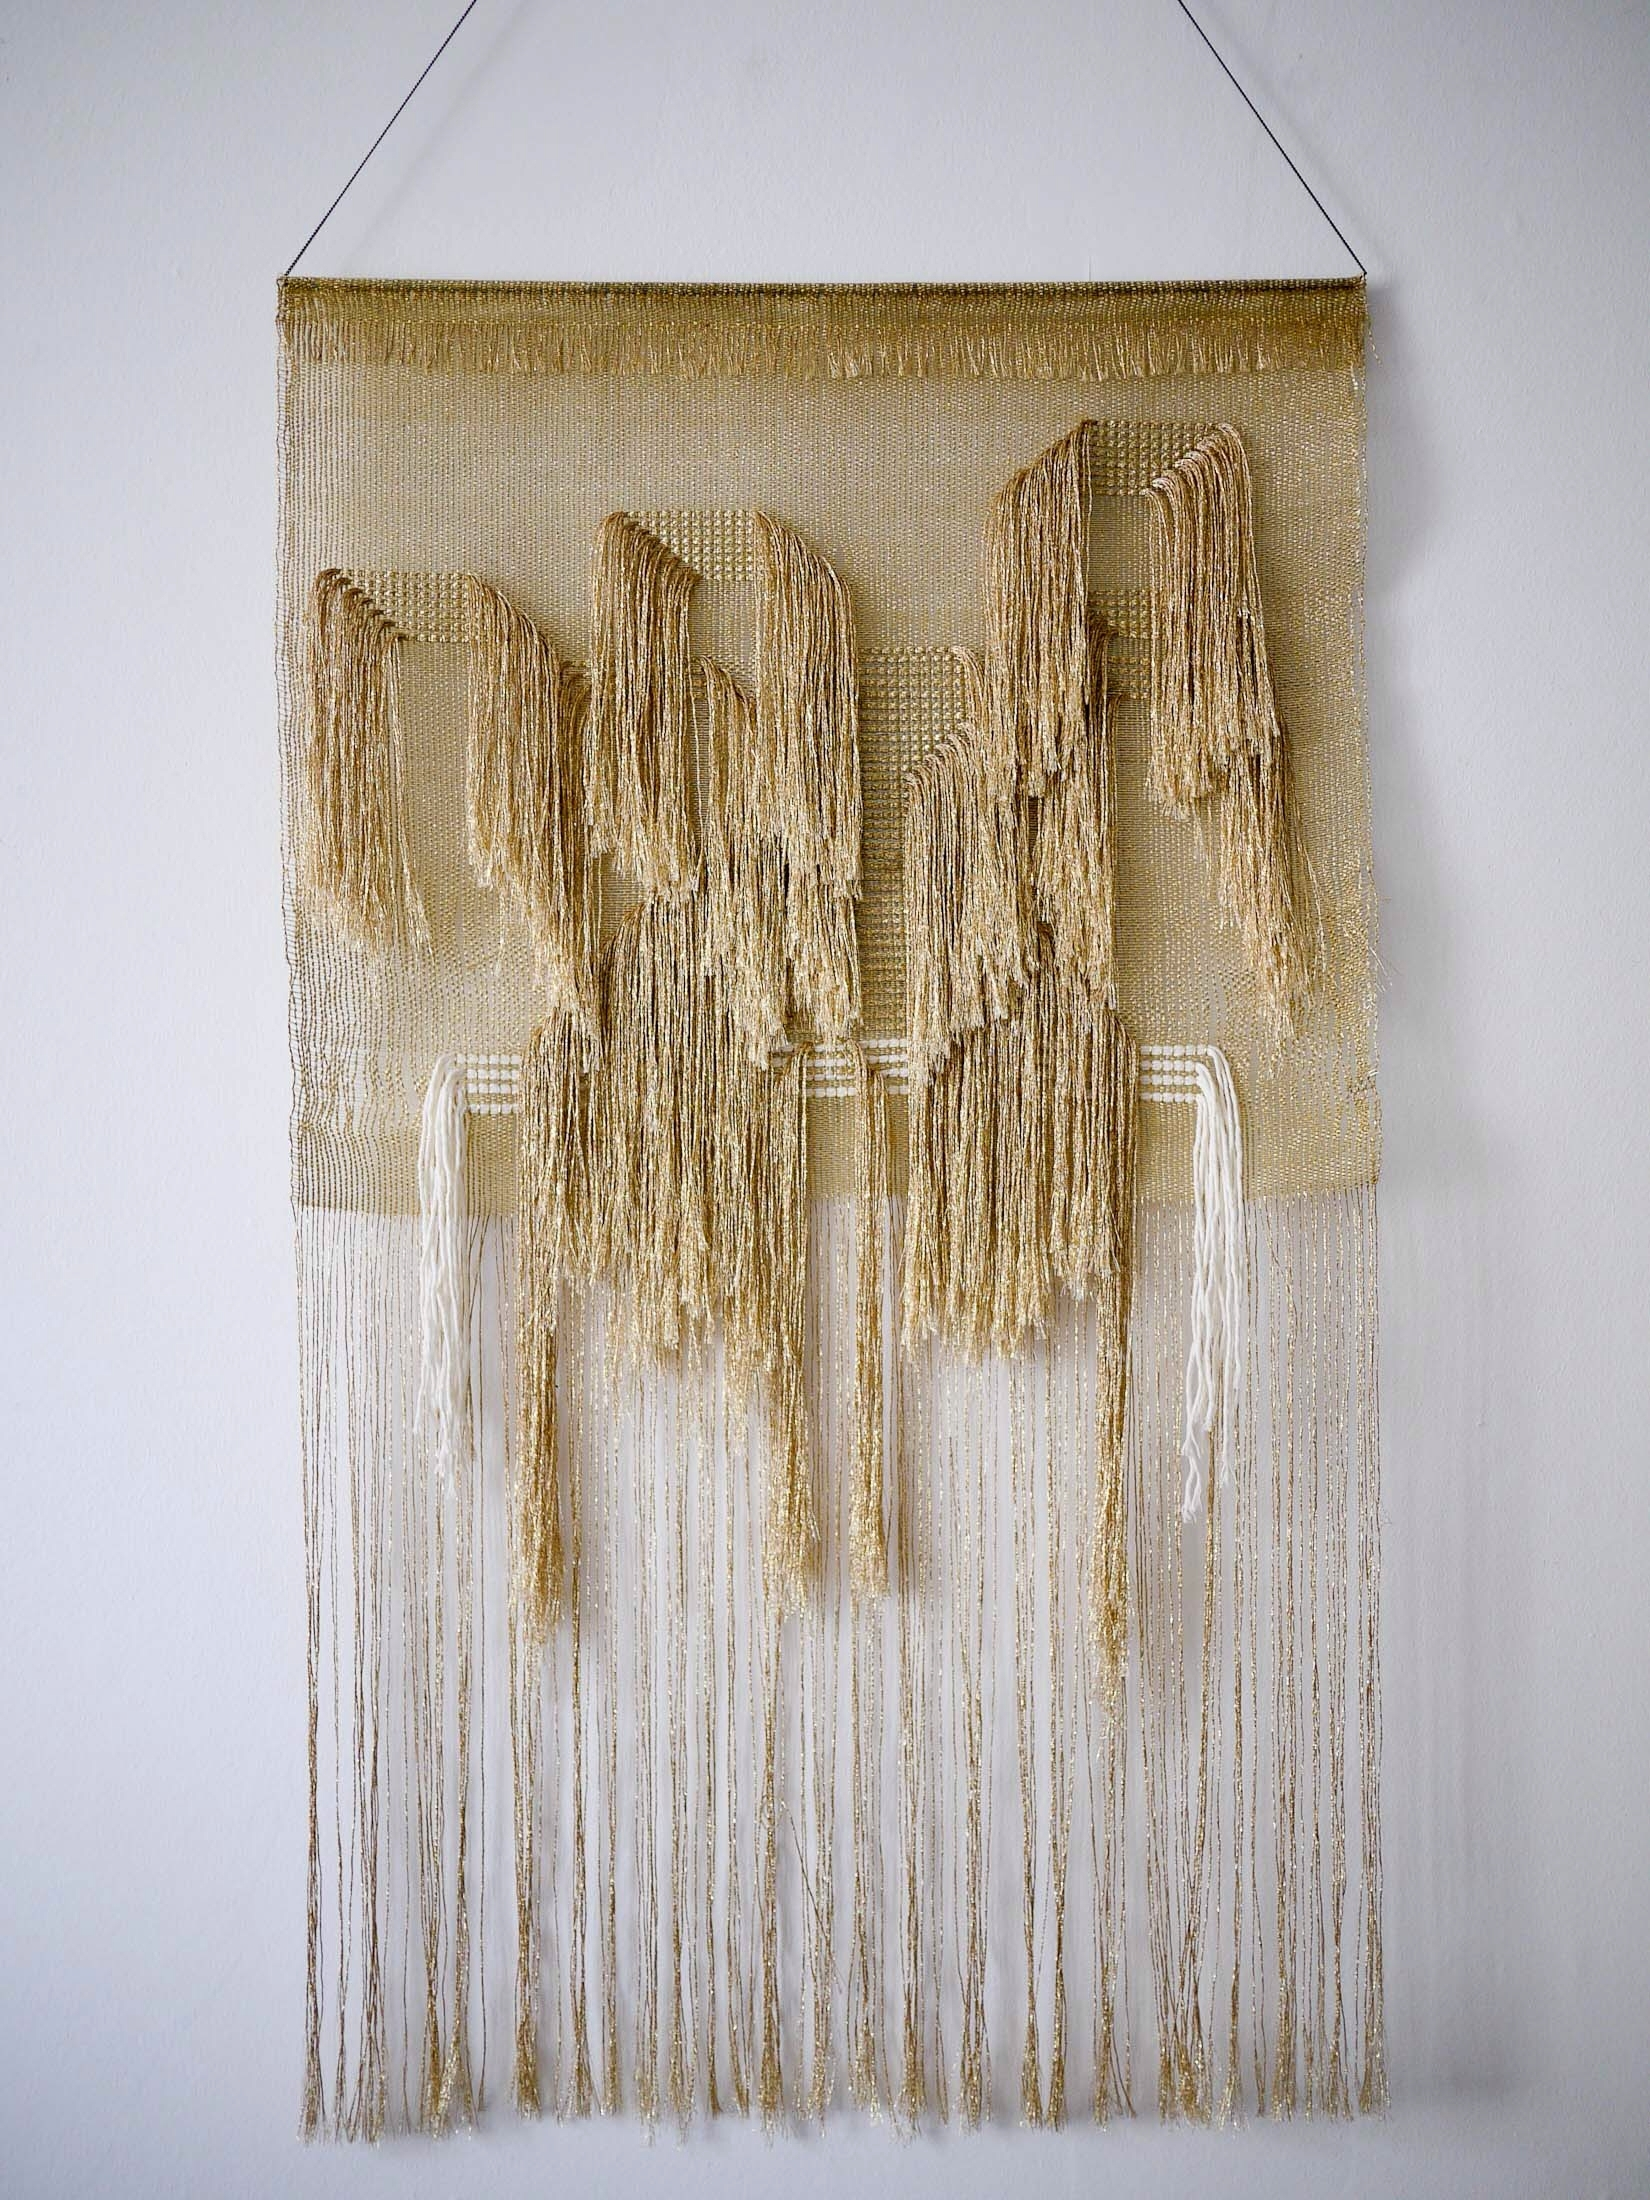 Weaving Justine Ashbee For Native Line. Woven Gold Wall Hanging Regarding Latest Woven Textile Wall Art (Gallery 2 of 15)